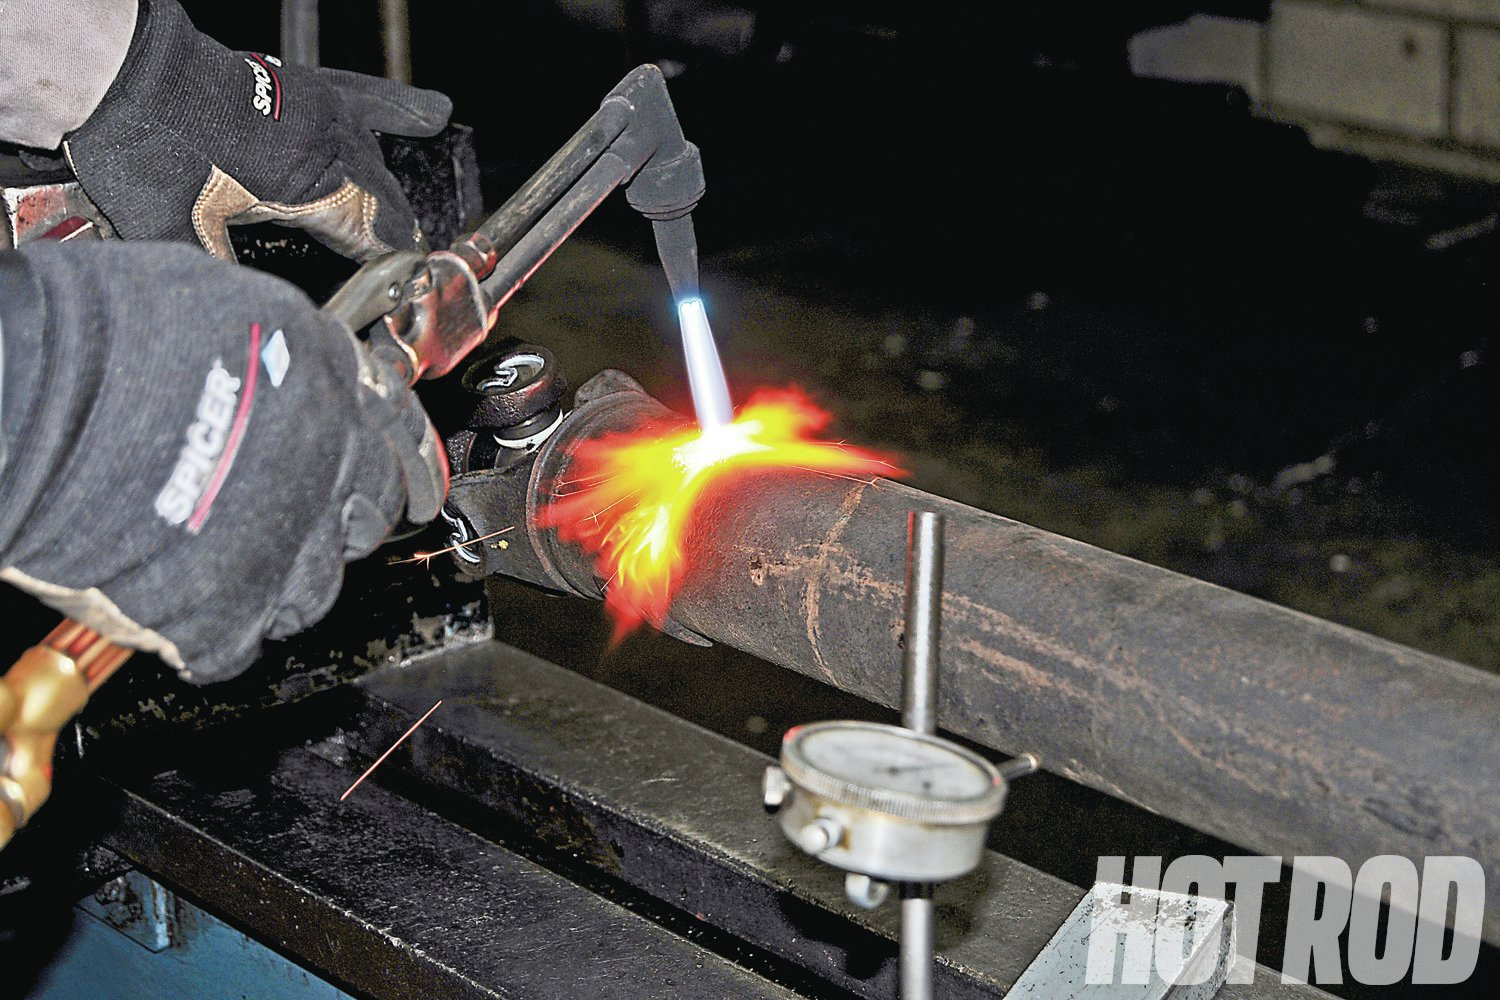 To straighten the driveshaft, the area with the most runout is first heated with a torch, which relieves the stress.